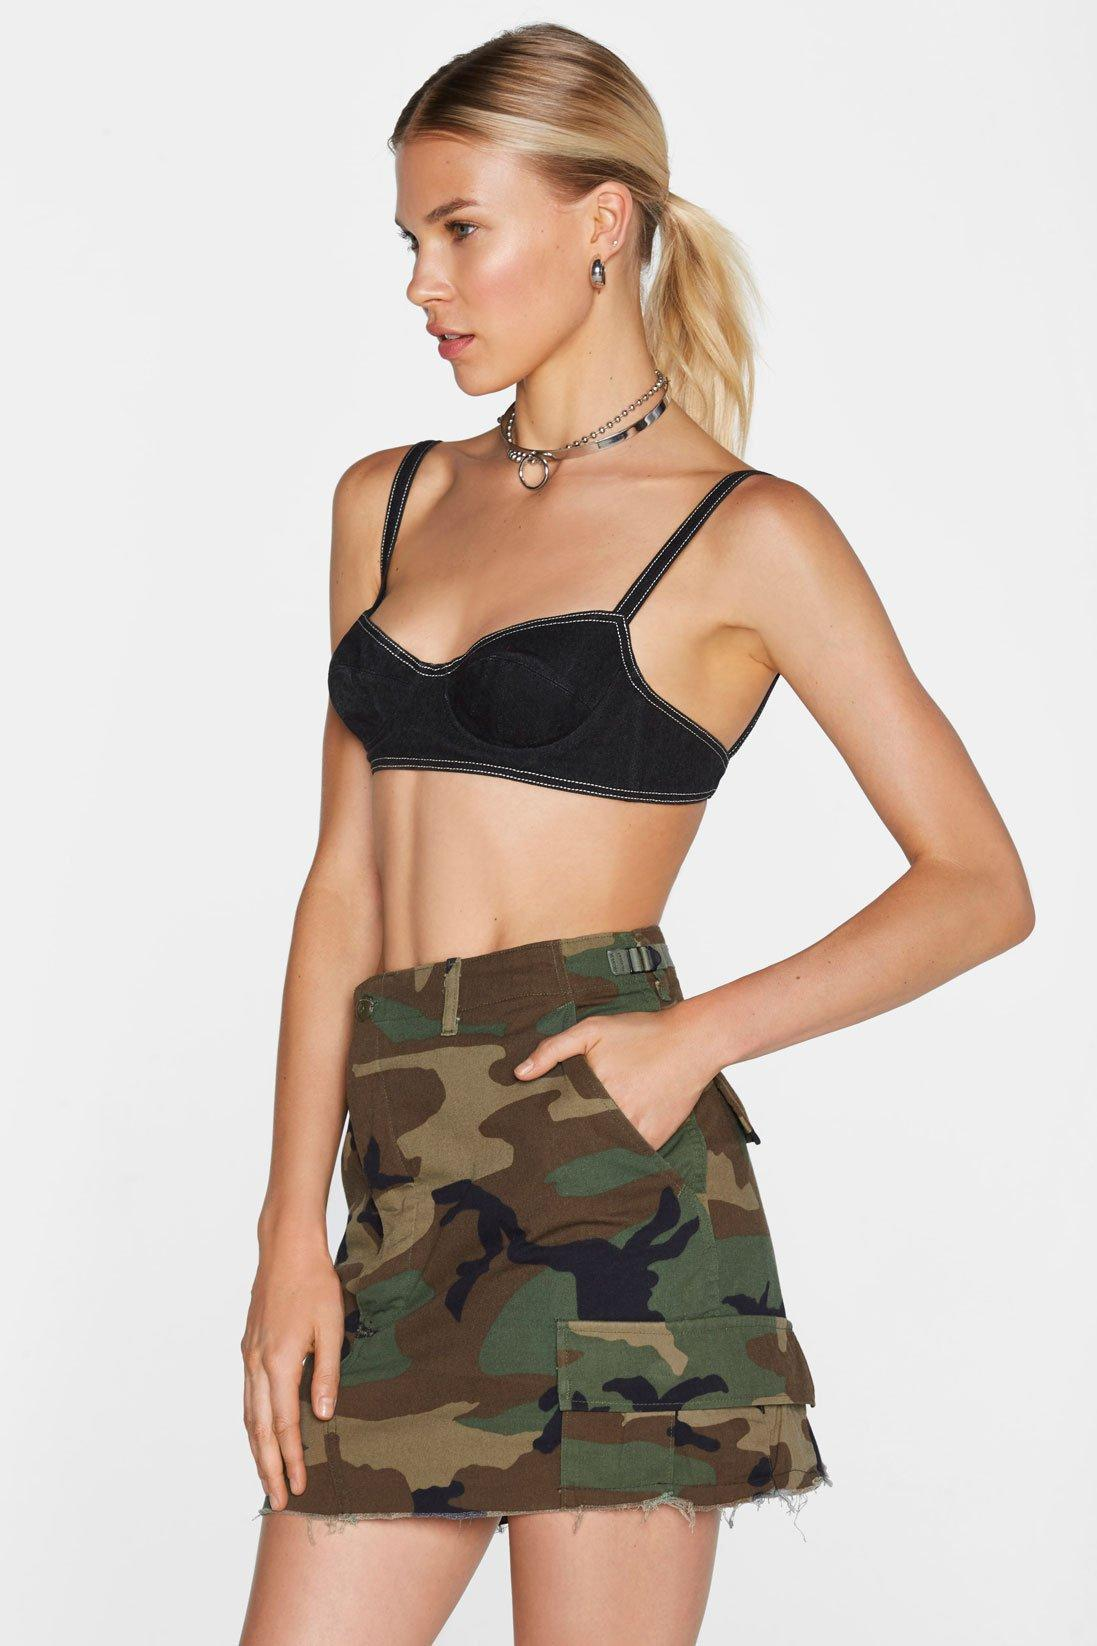 fee33f7d9de73 Lyst - Nasty Gal After Party Vintage In The Trenches Camo Skirt ...